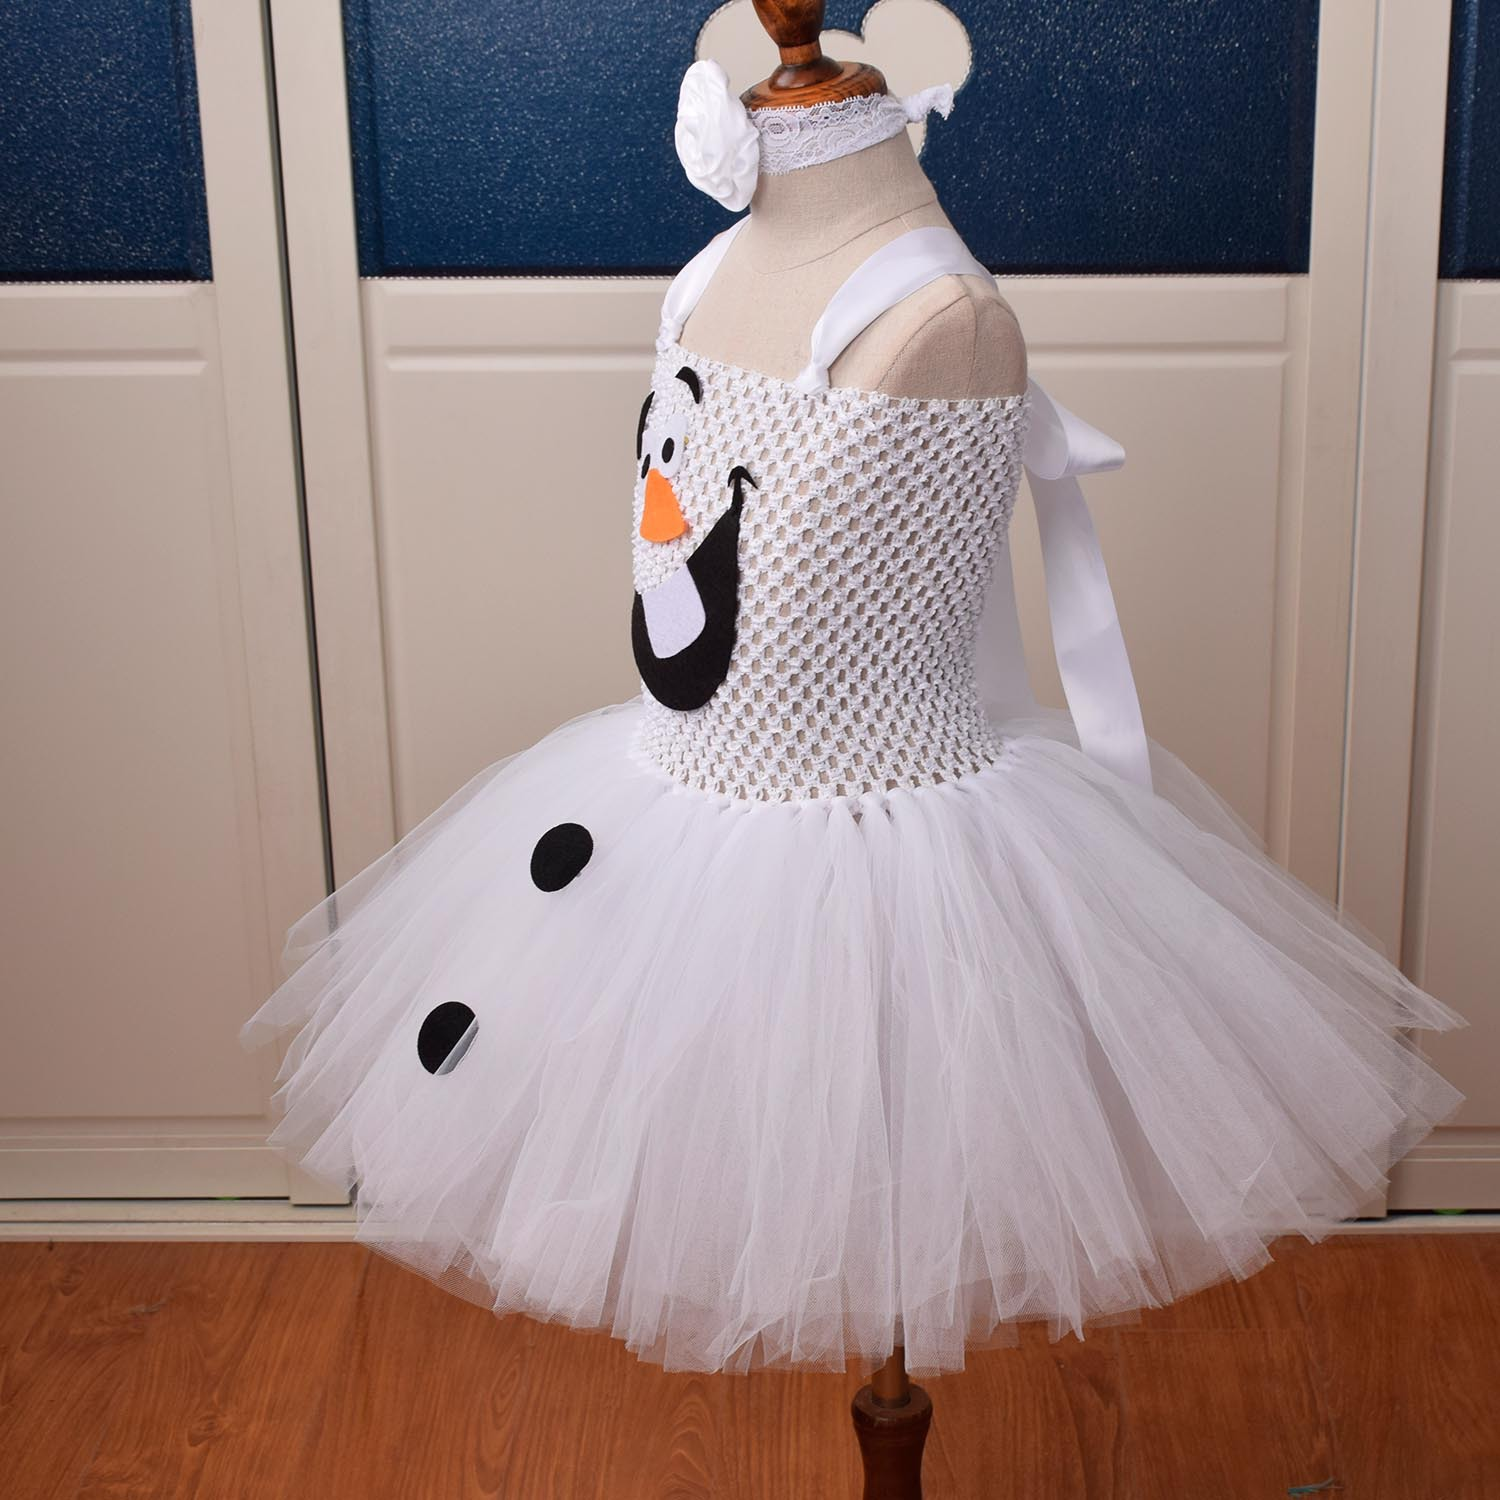 Infant olaf costume